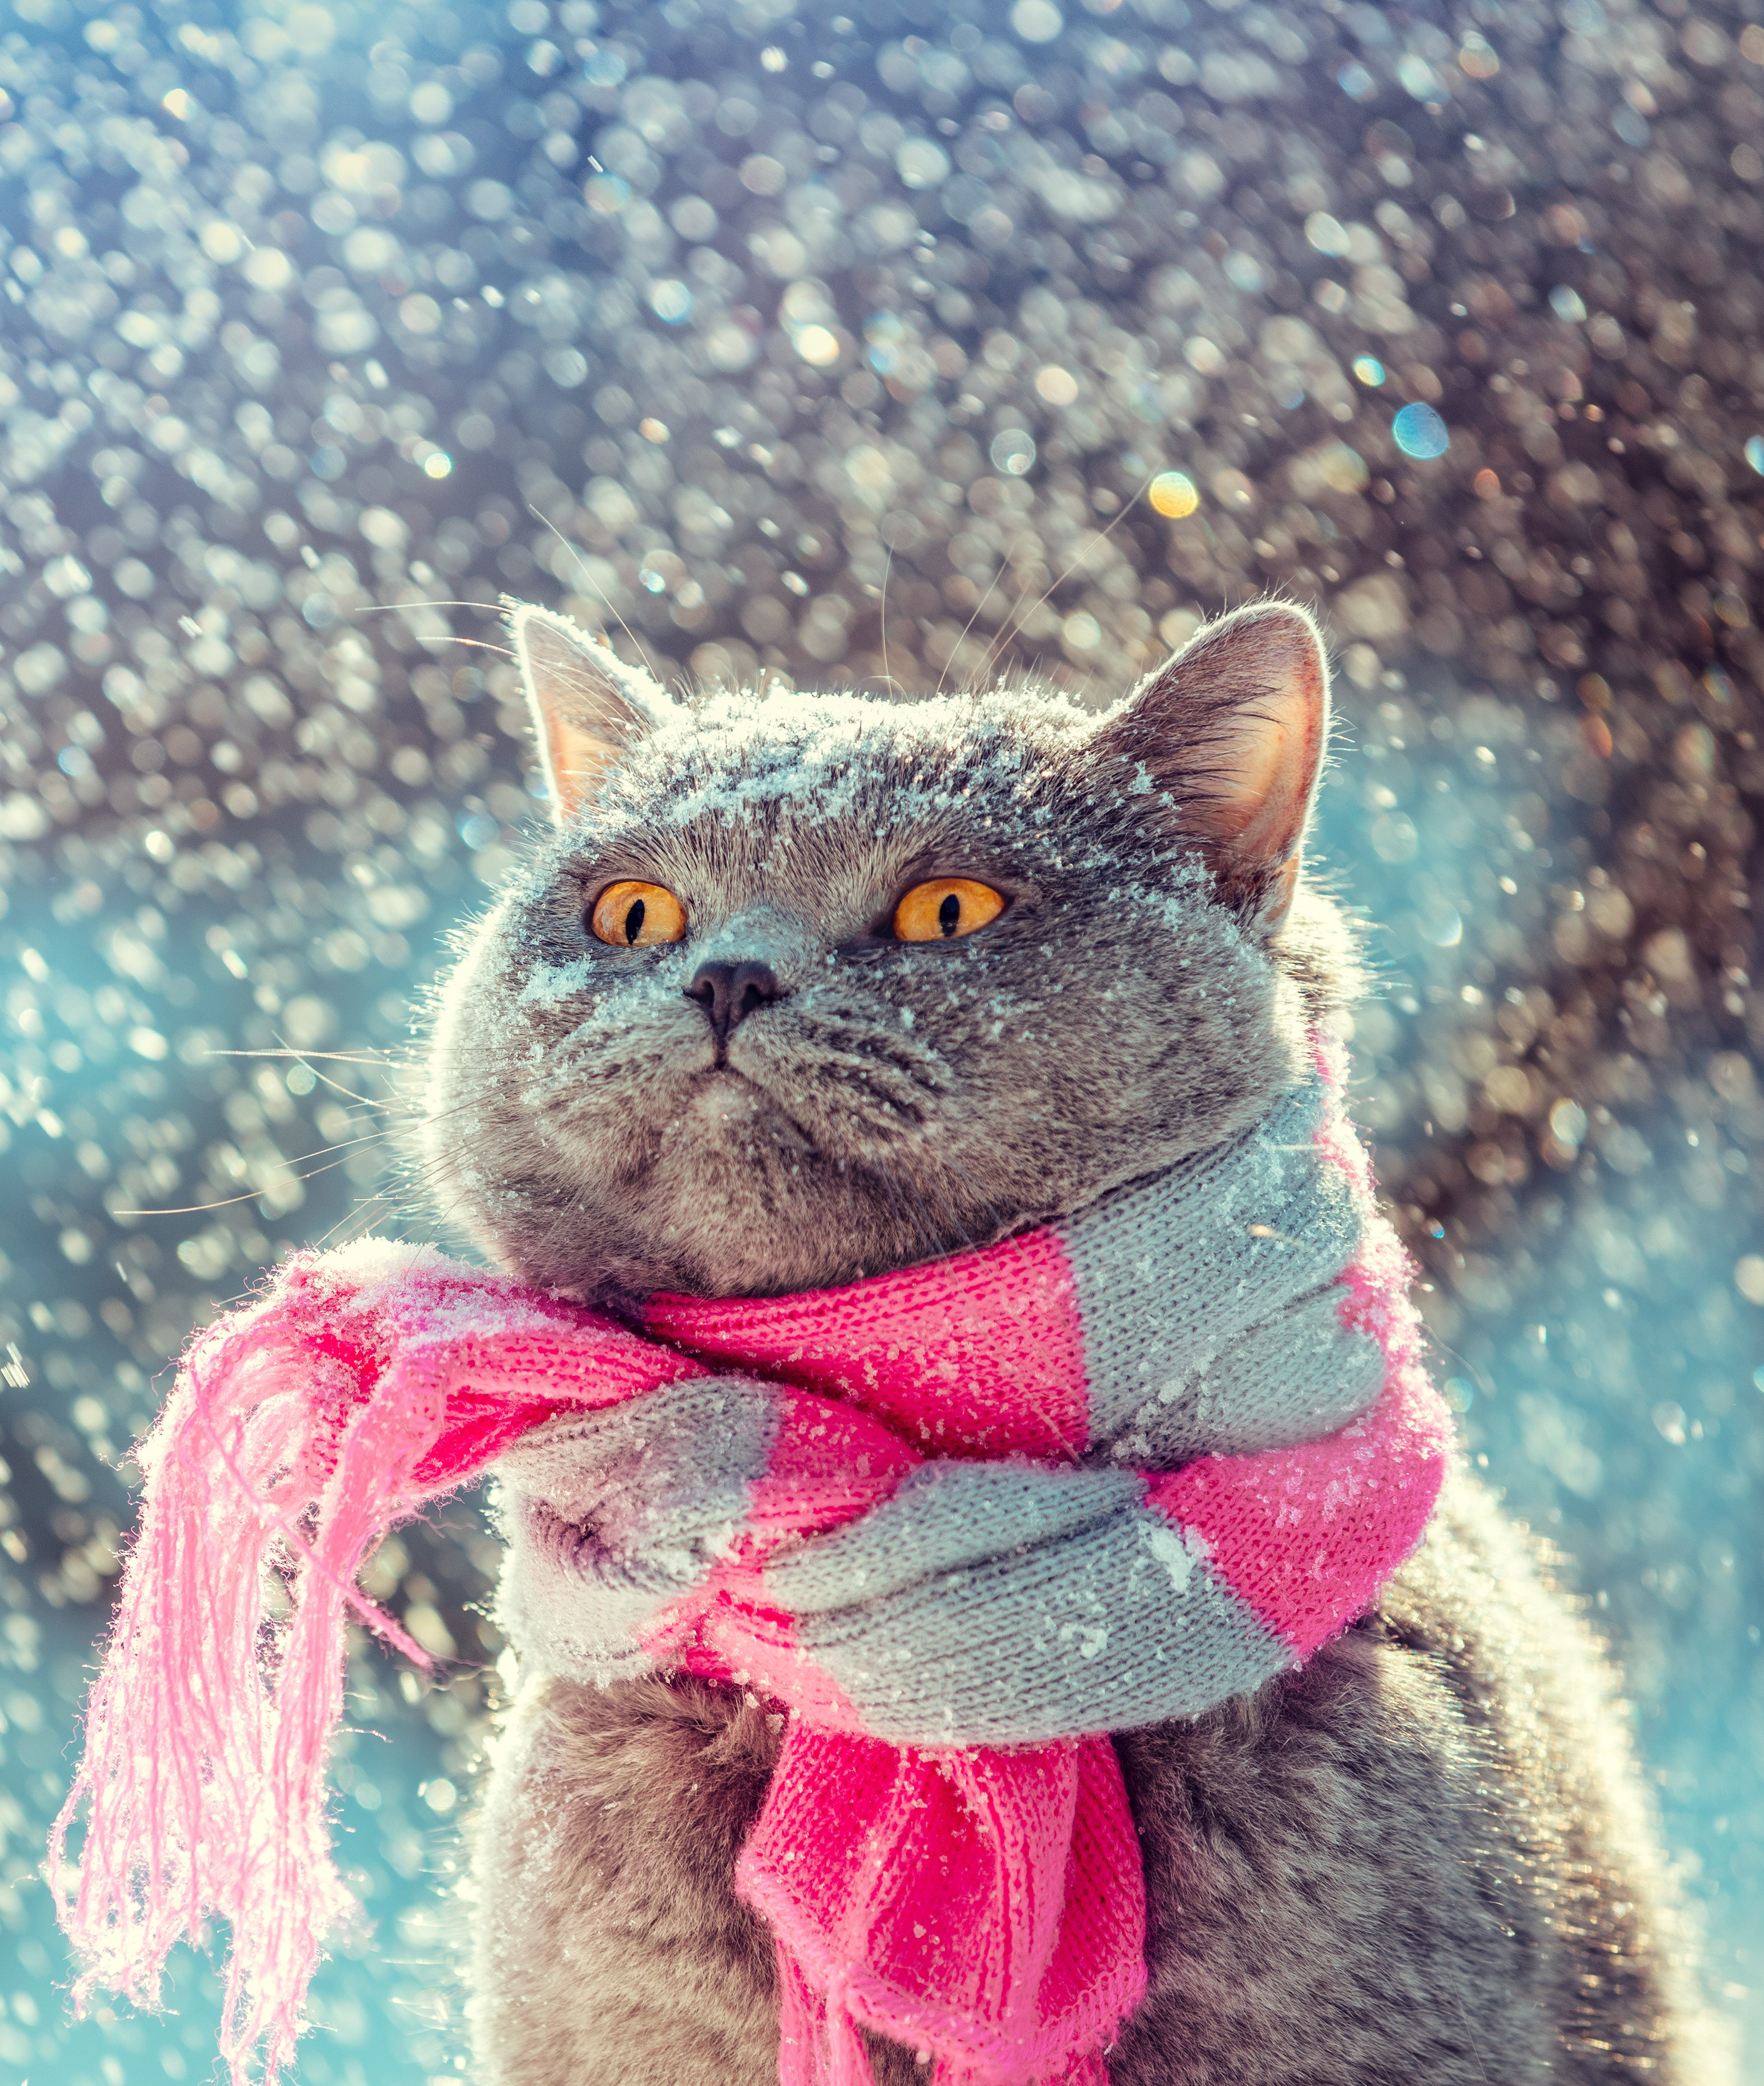 A cat wearing a scarf in the snow